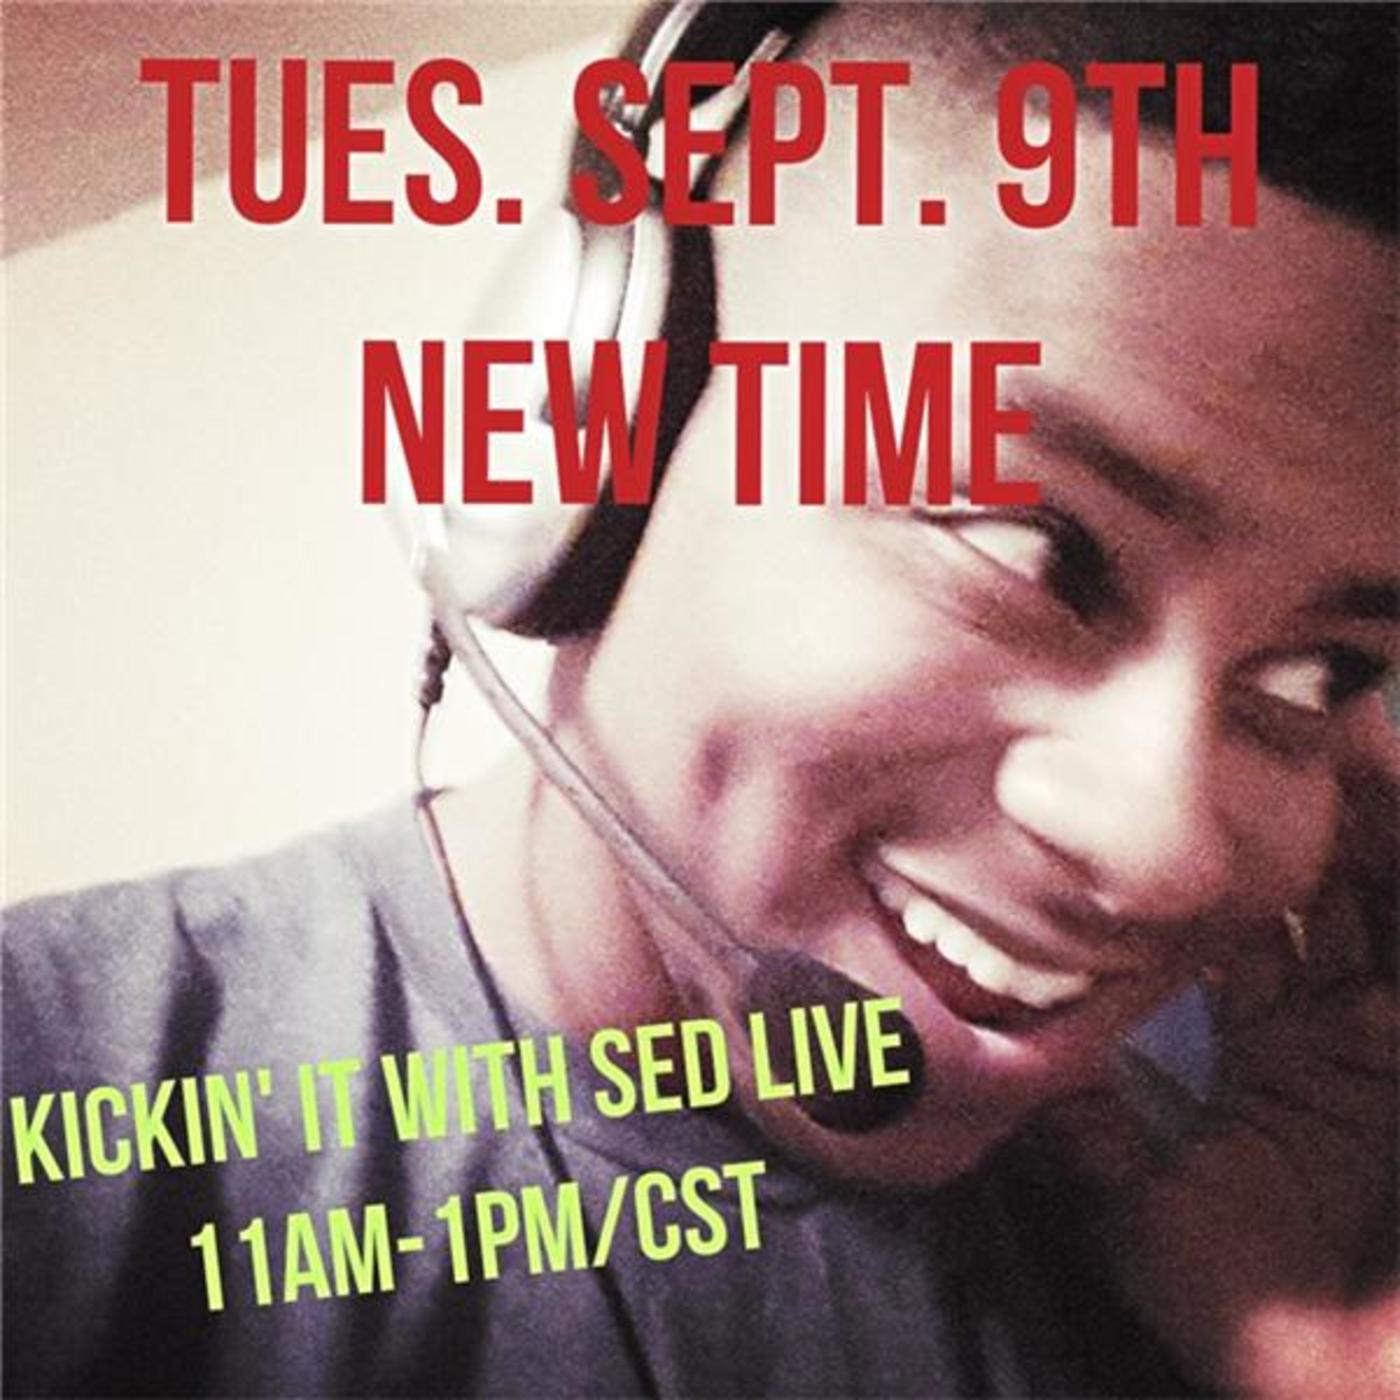 Kickin' it with Sed LIVE